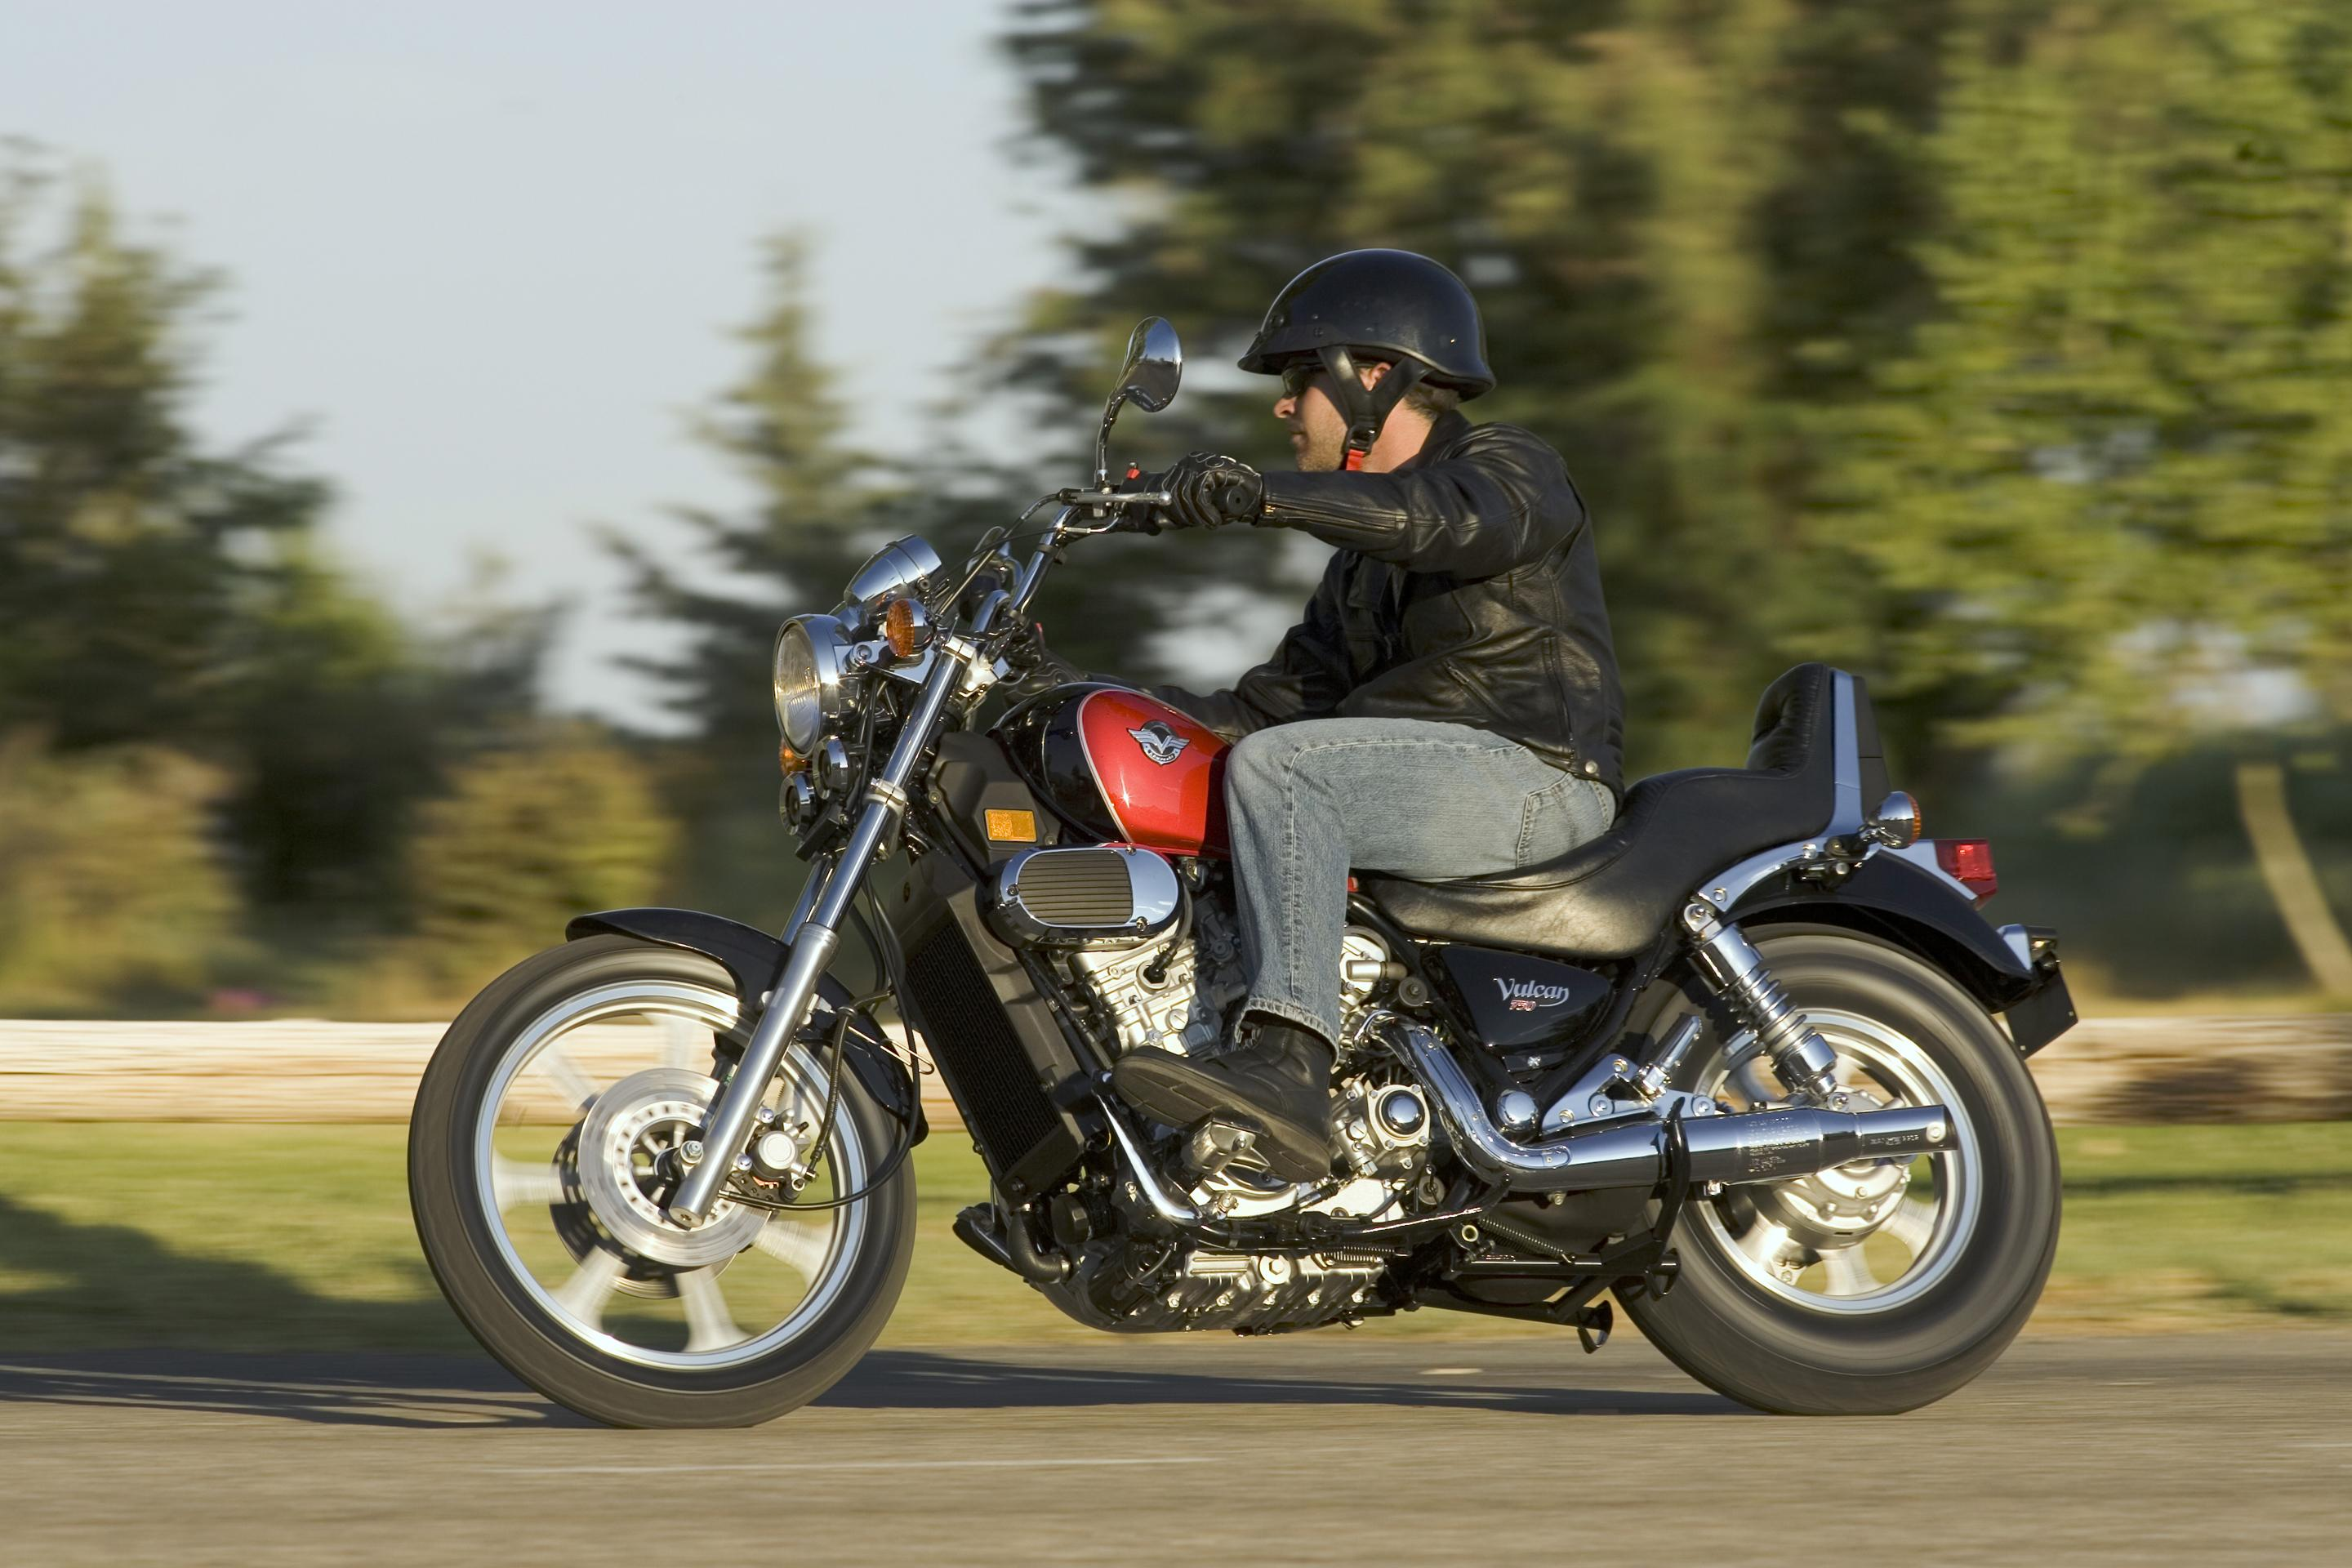 2006 Kawasaki Vulcan 750 | Top Speed